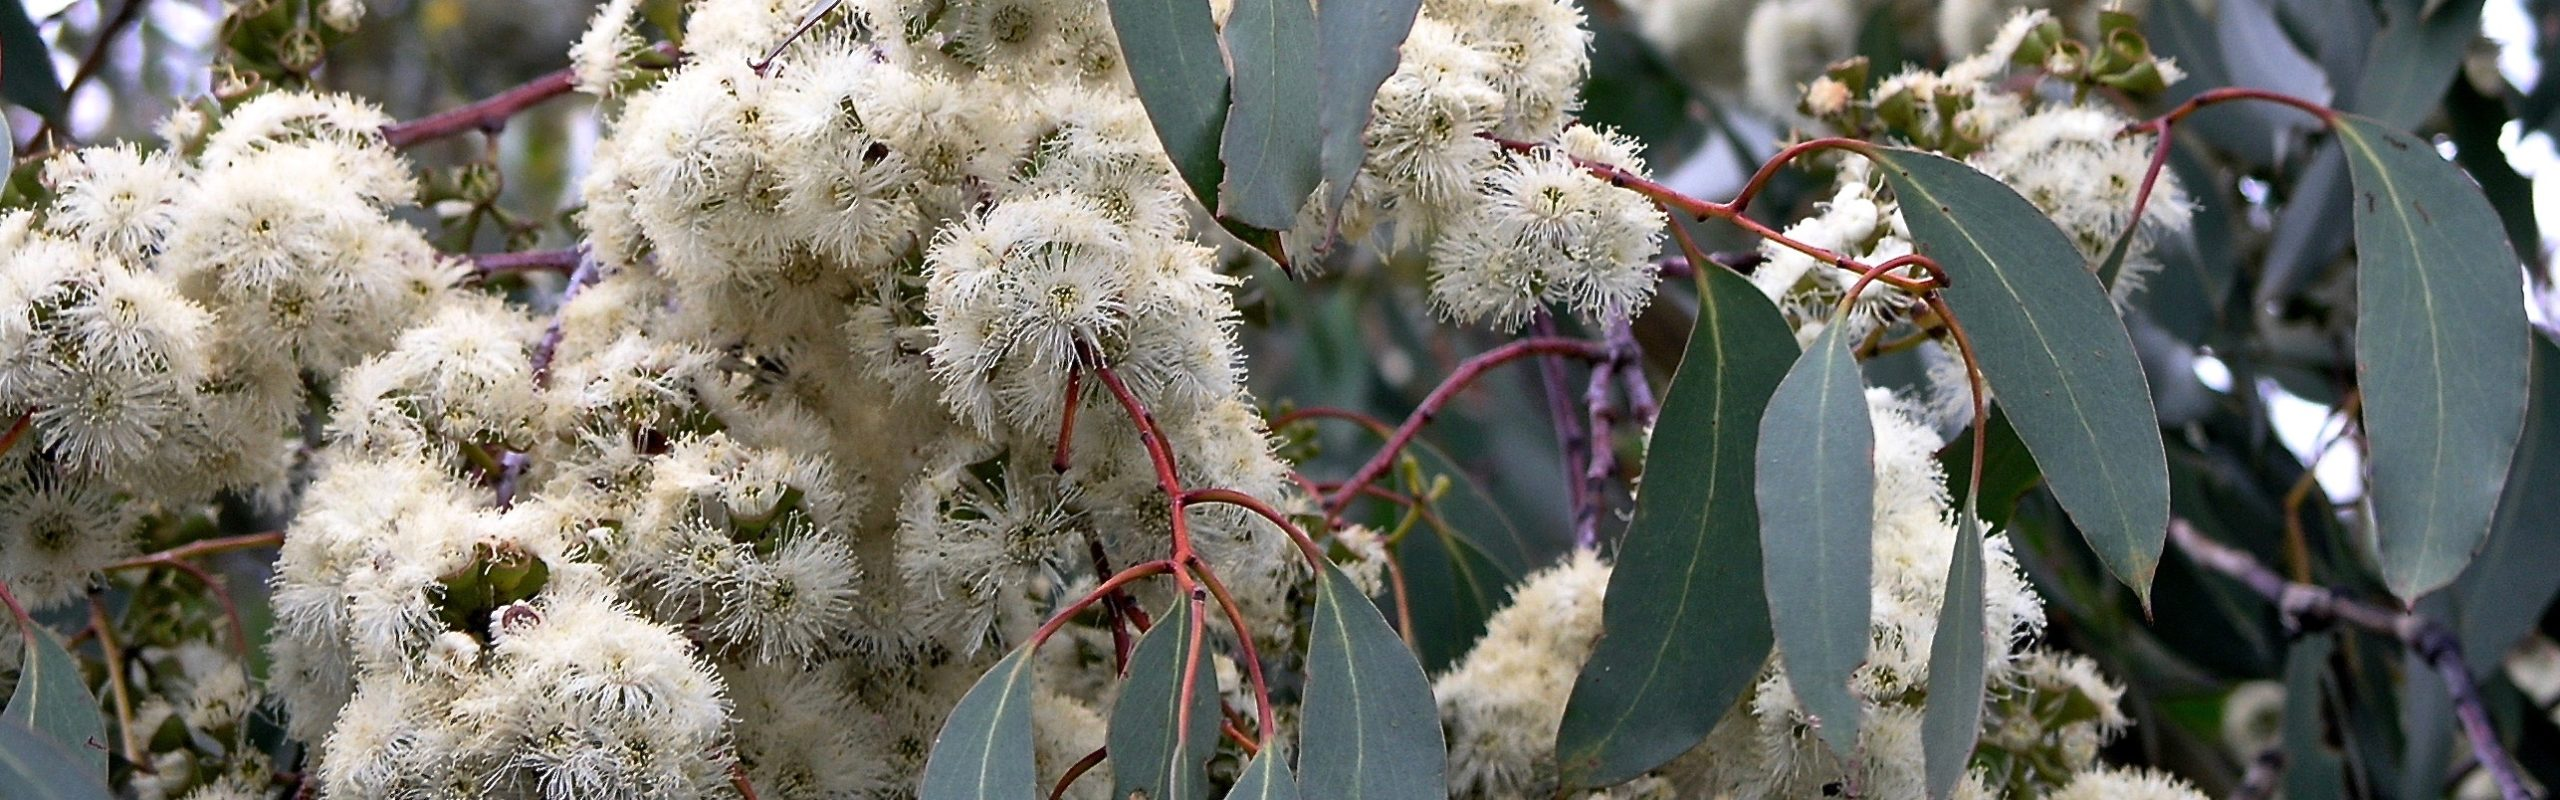 Prolific Eucalypt Blossoms